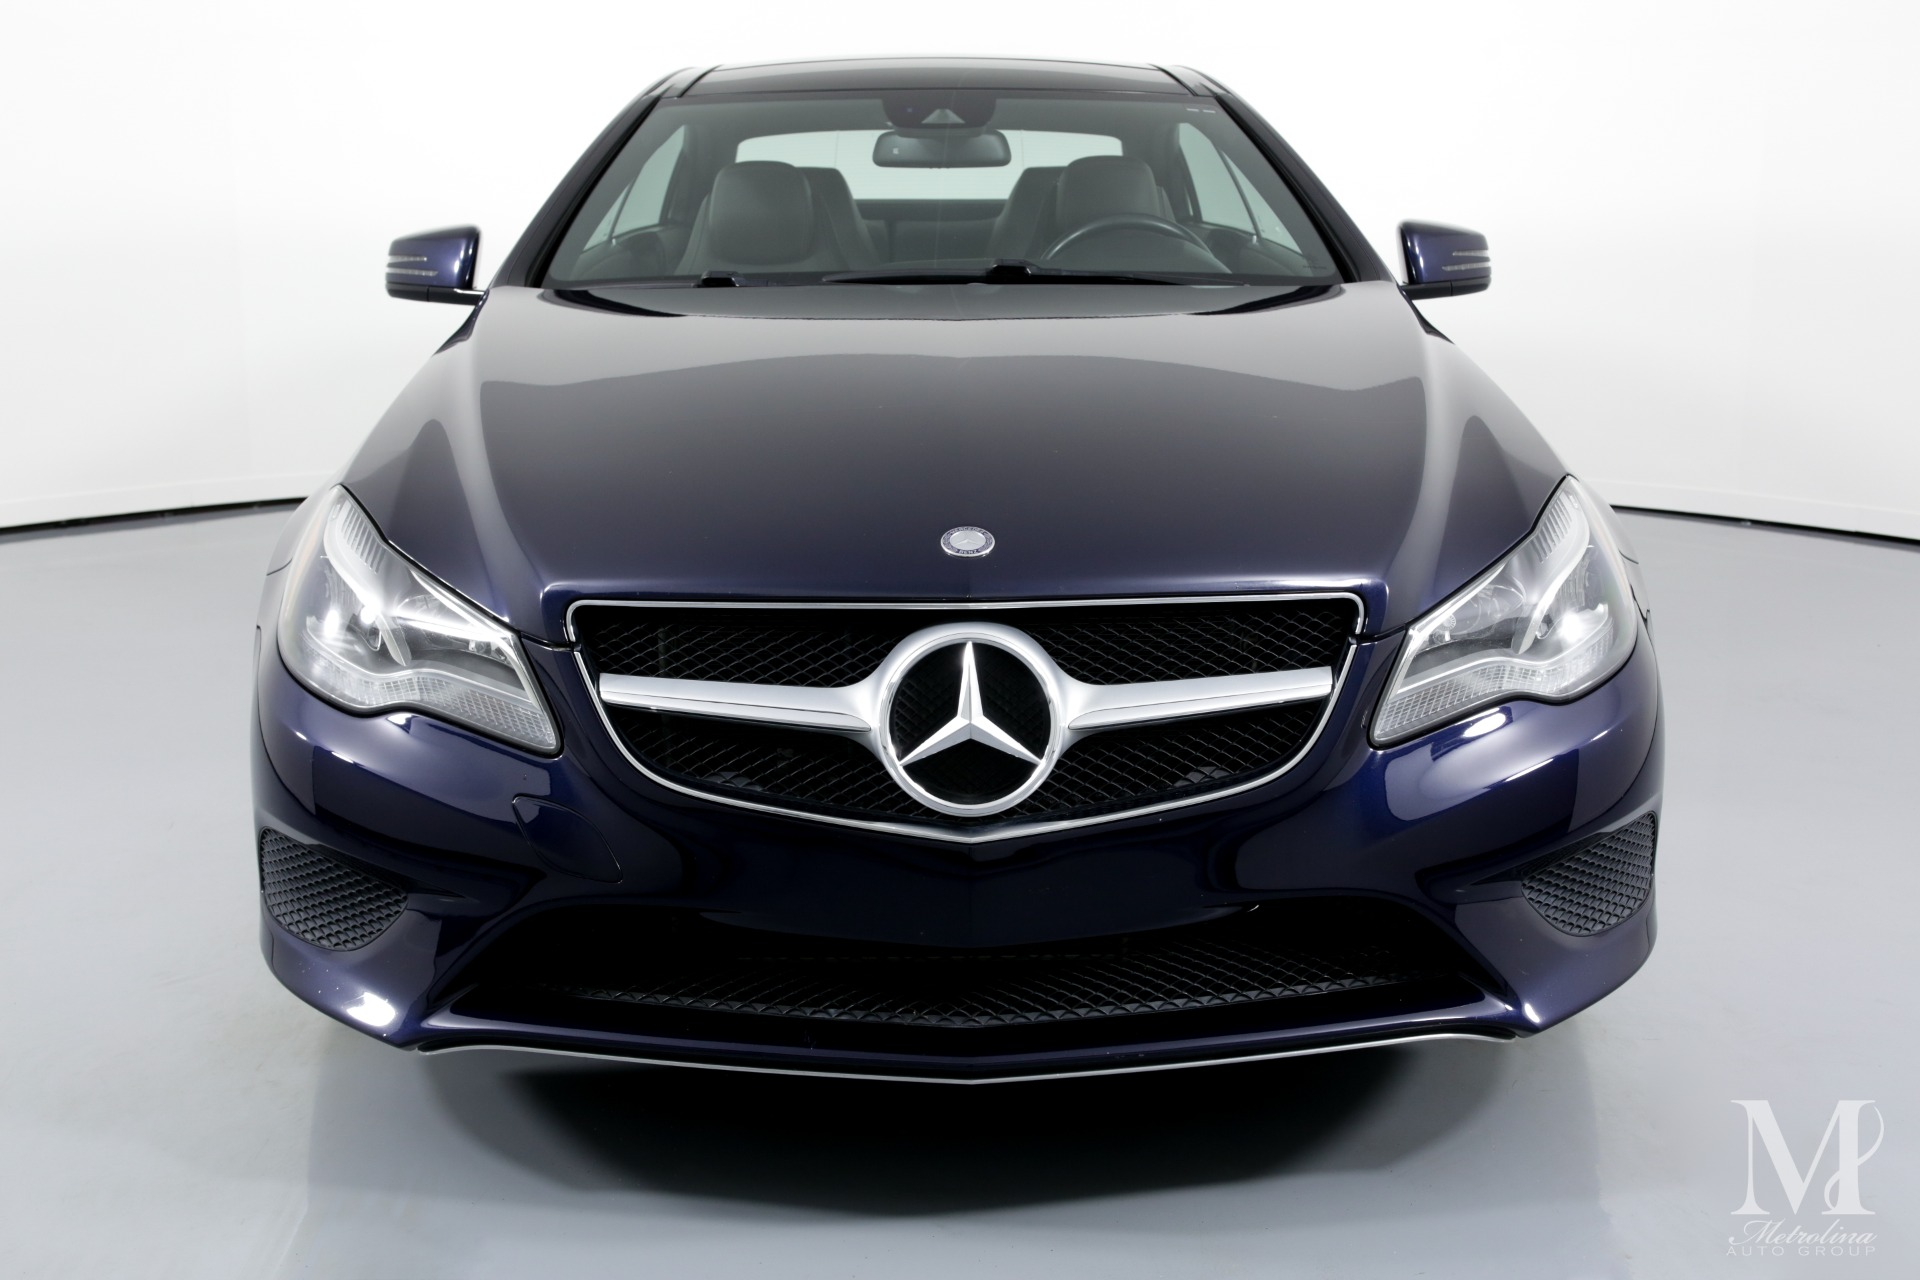 Used 2014 Mercedes-Benz E-Class E 350 4MATIC AWD 2dr Coupe for sale Sold at Metrolina Auto Group in Charlotte NC 28217 - 3